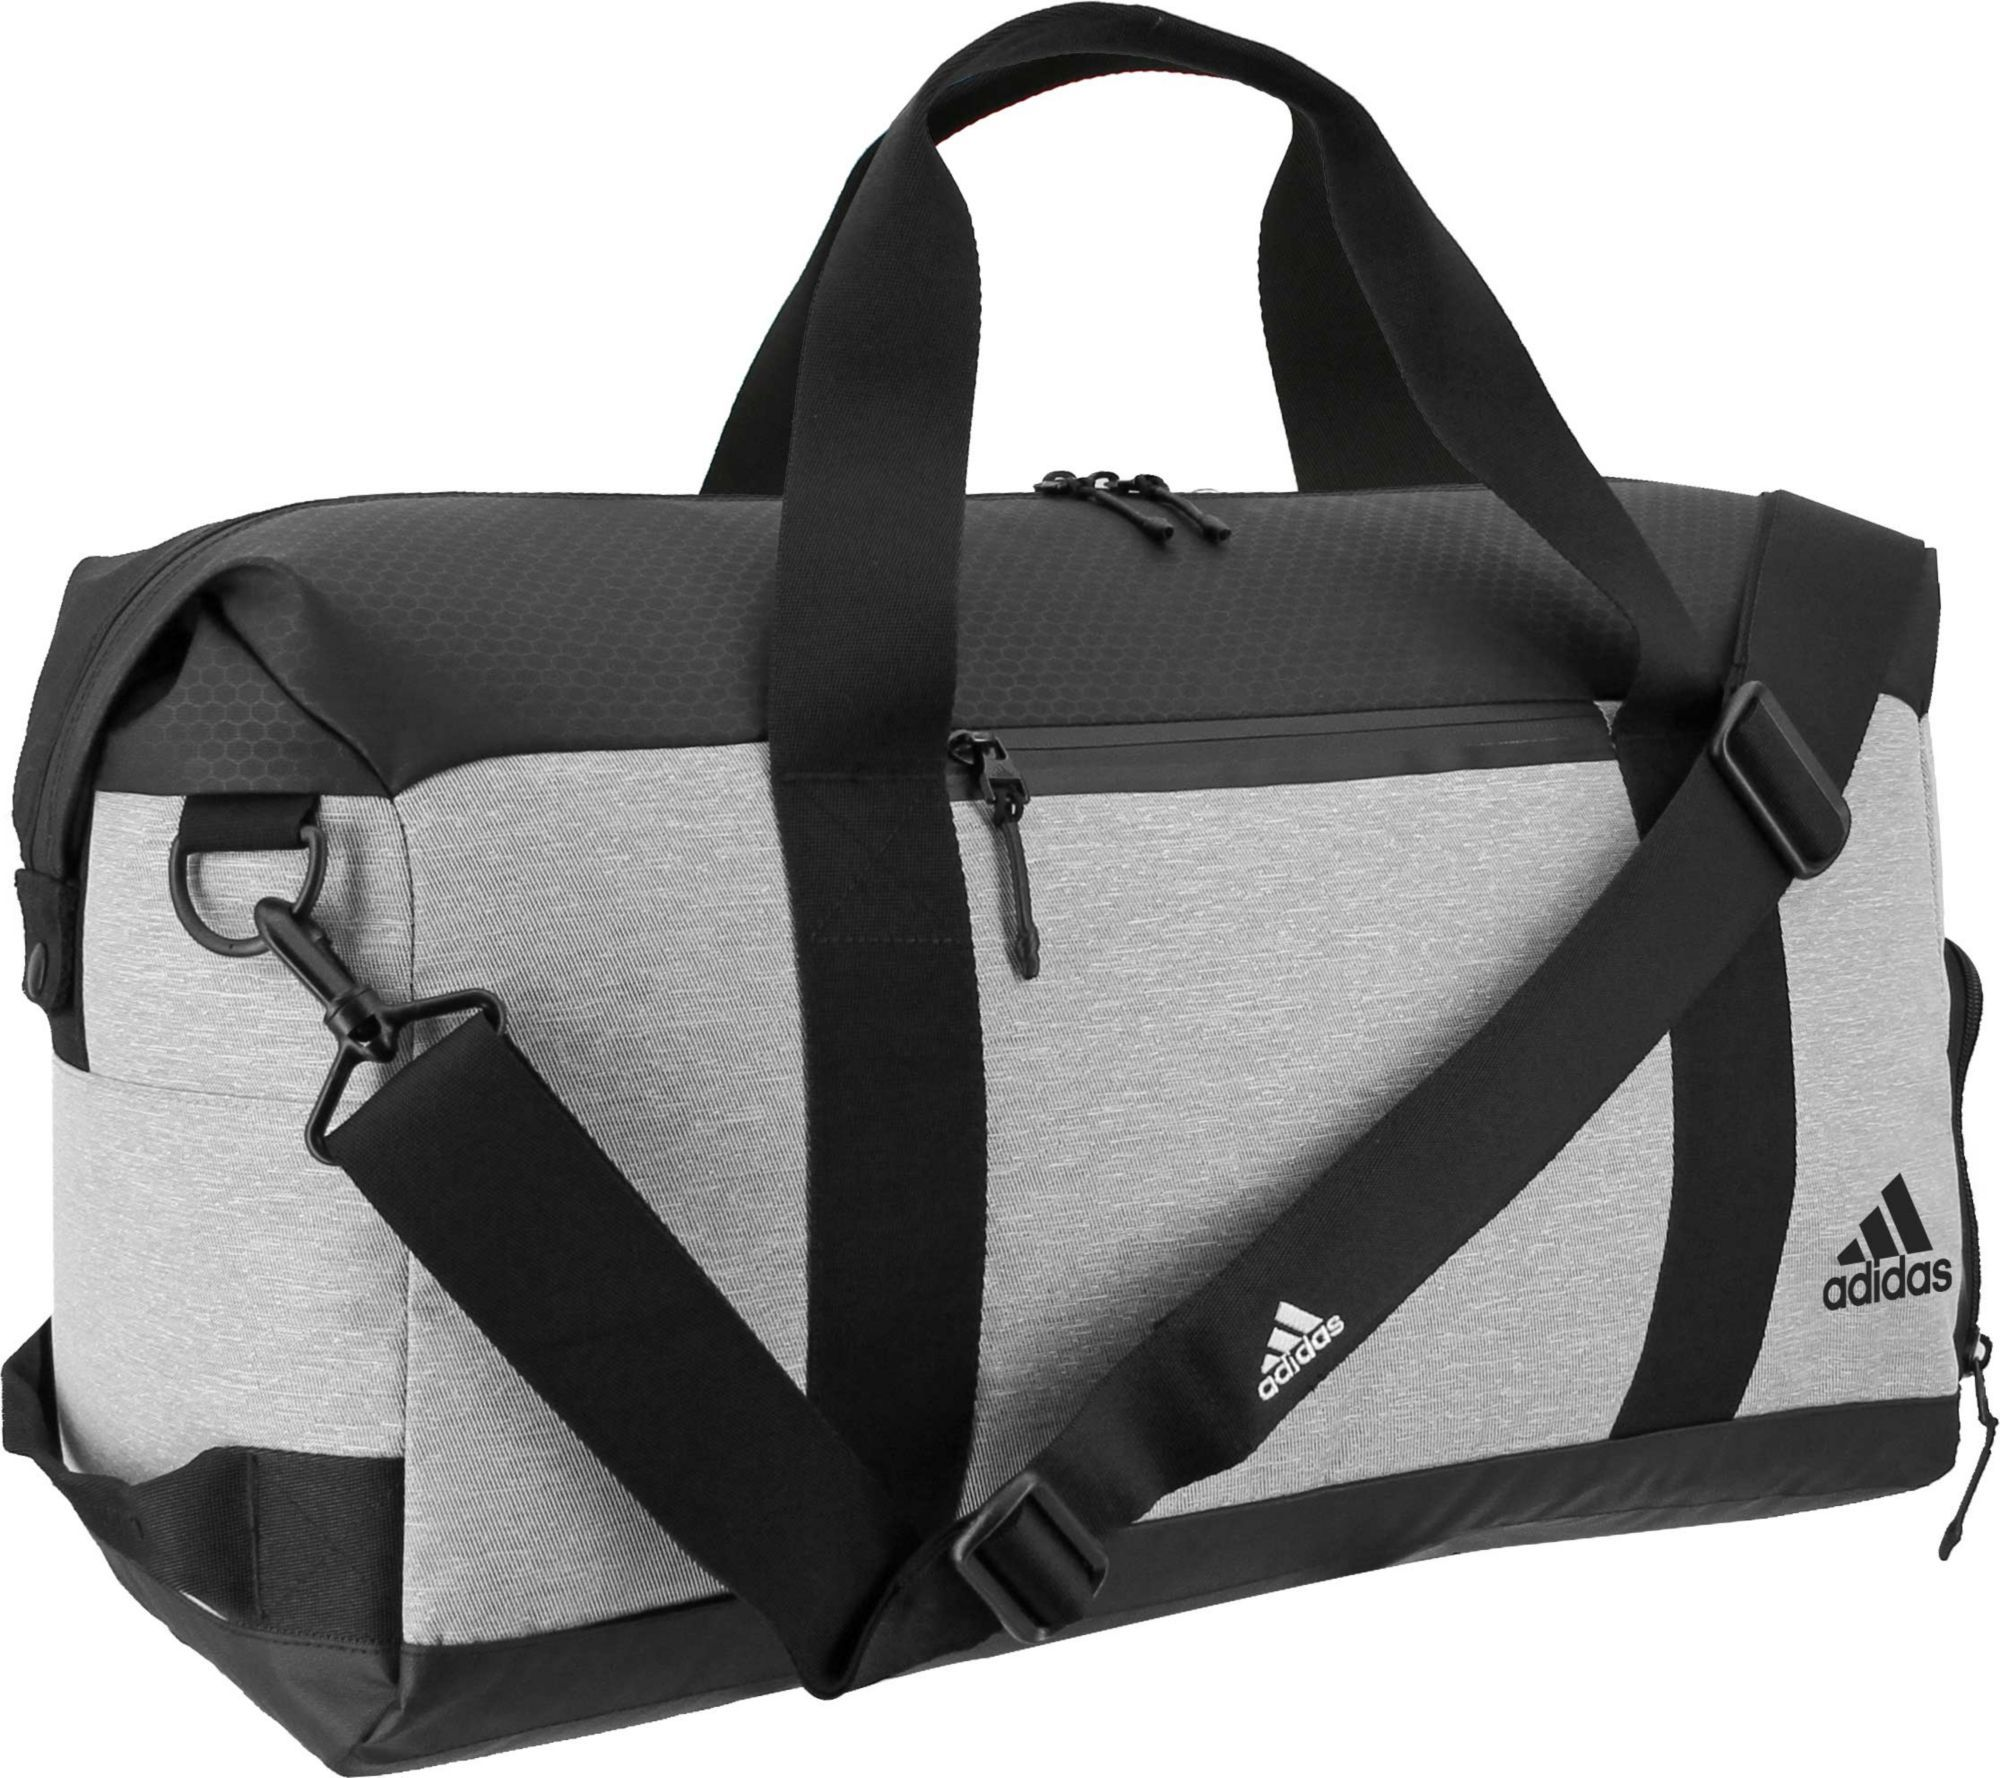 bb939a8fe8c adidas Sport ID Duffle Bag in 2019 | Products | Adidas duffle bag ...